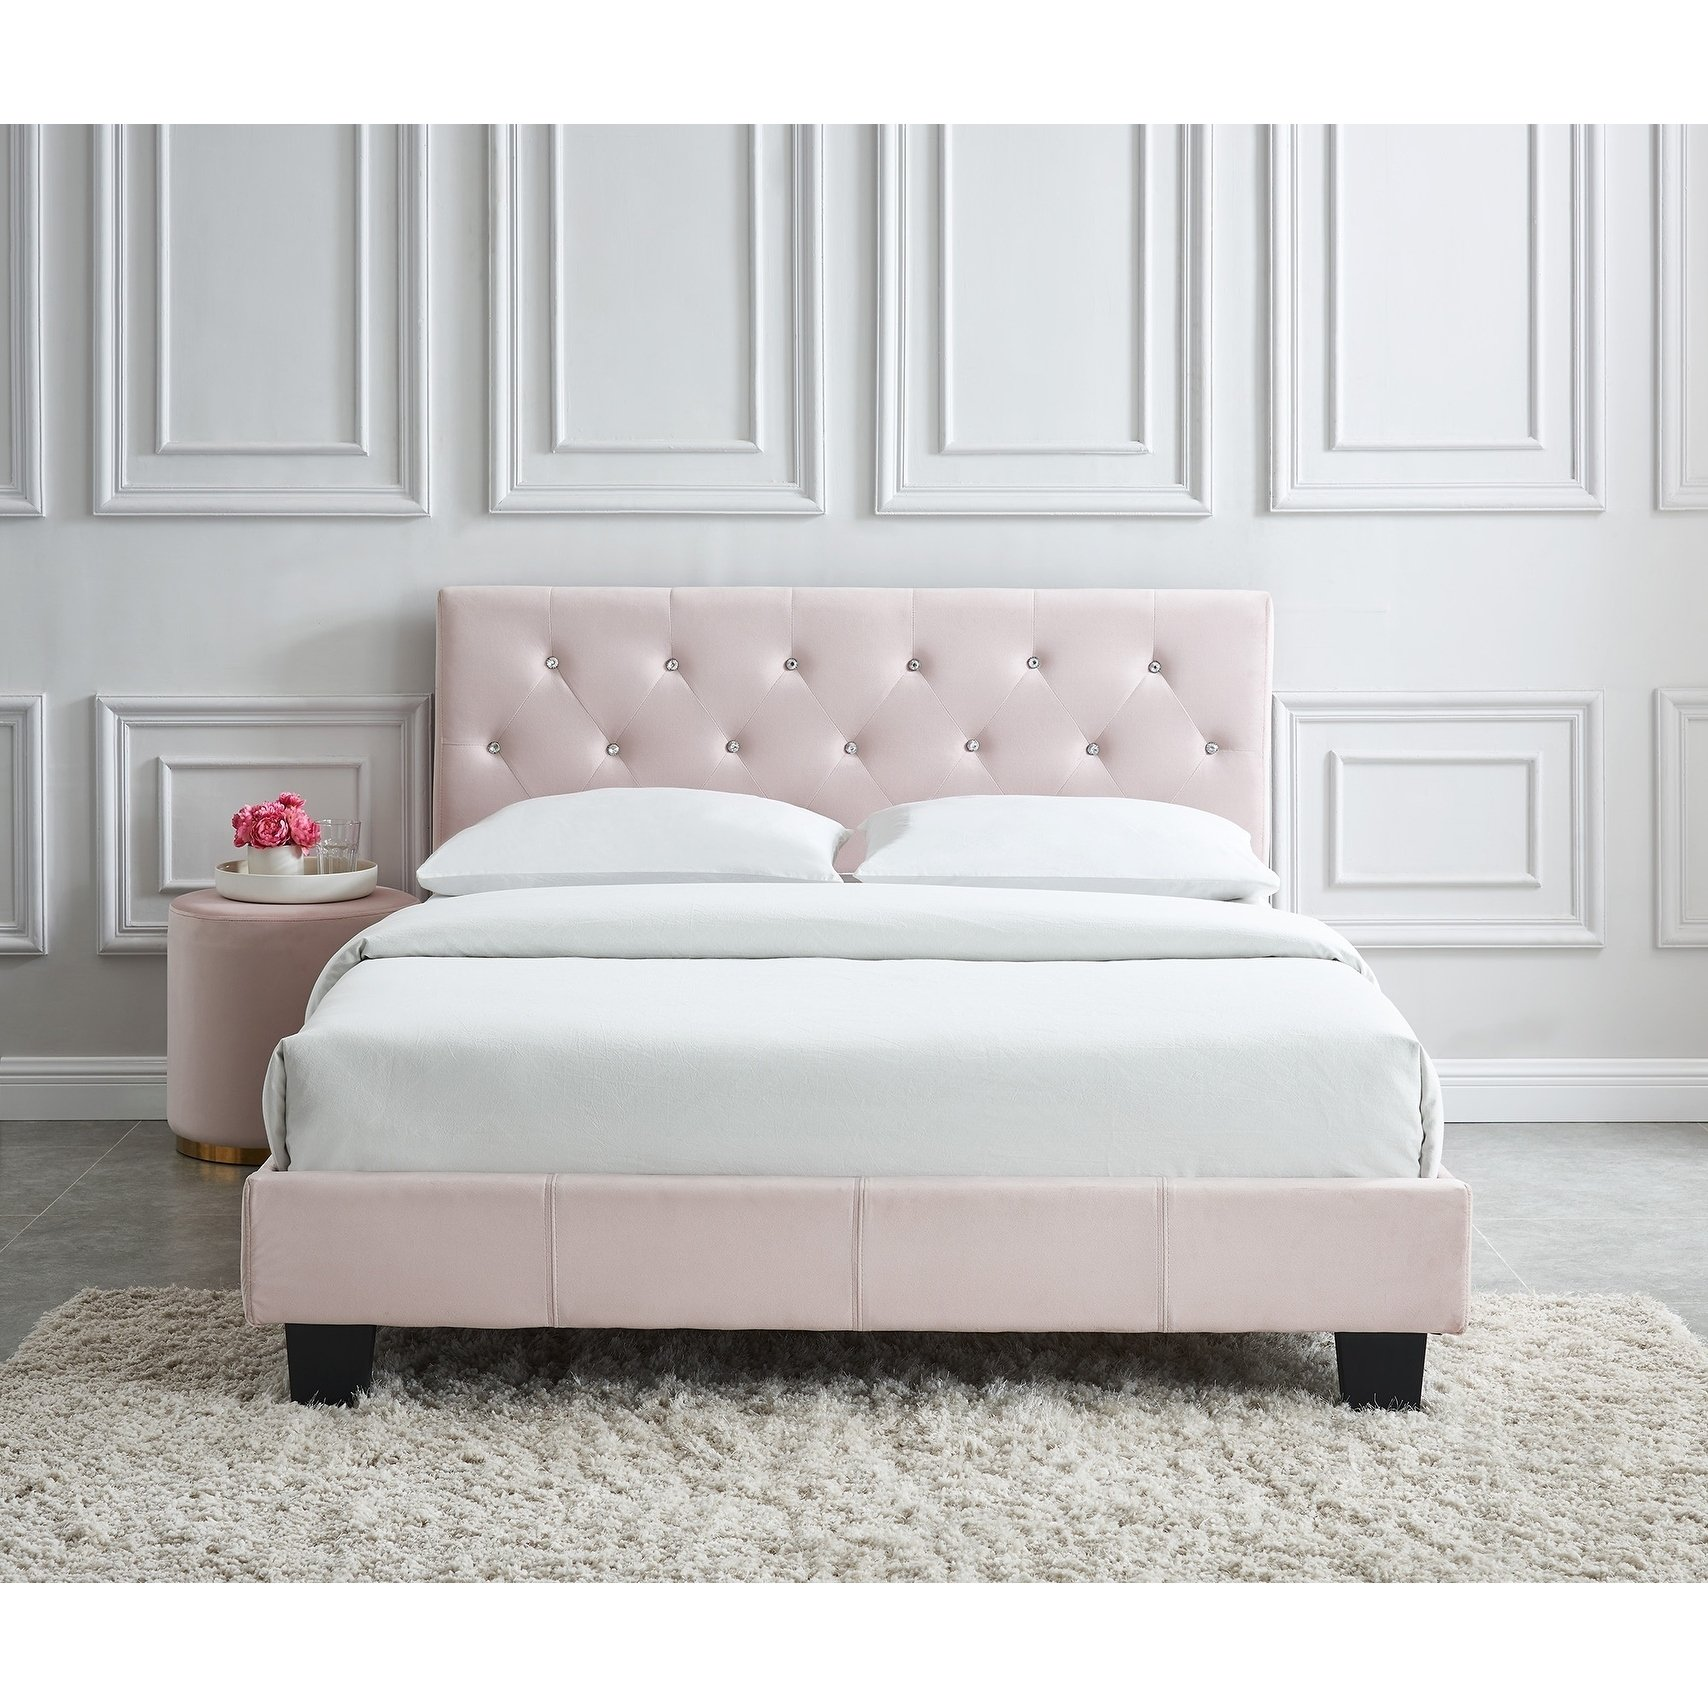 Jazelle Queen Velvet Crystal Tufted Platform Bed Pink Upholstered Platform Bed Furniture Bed Linen Design